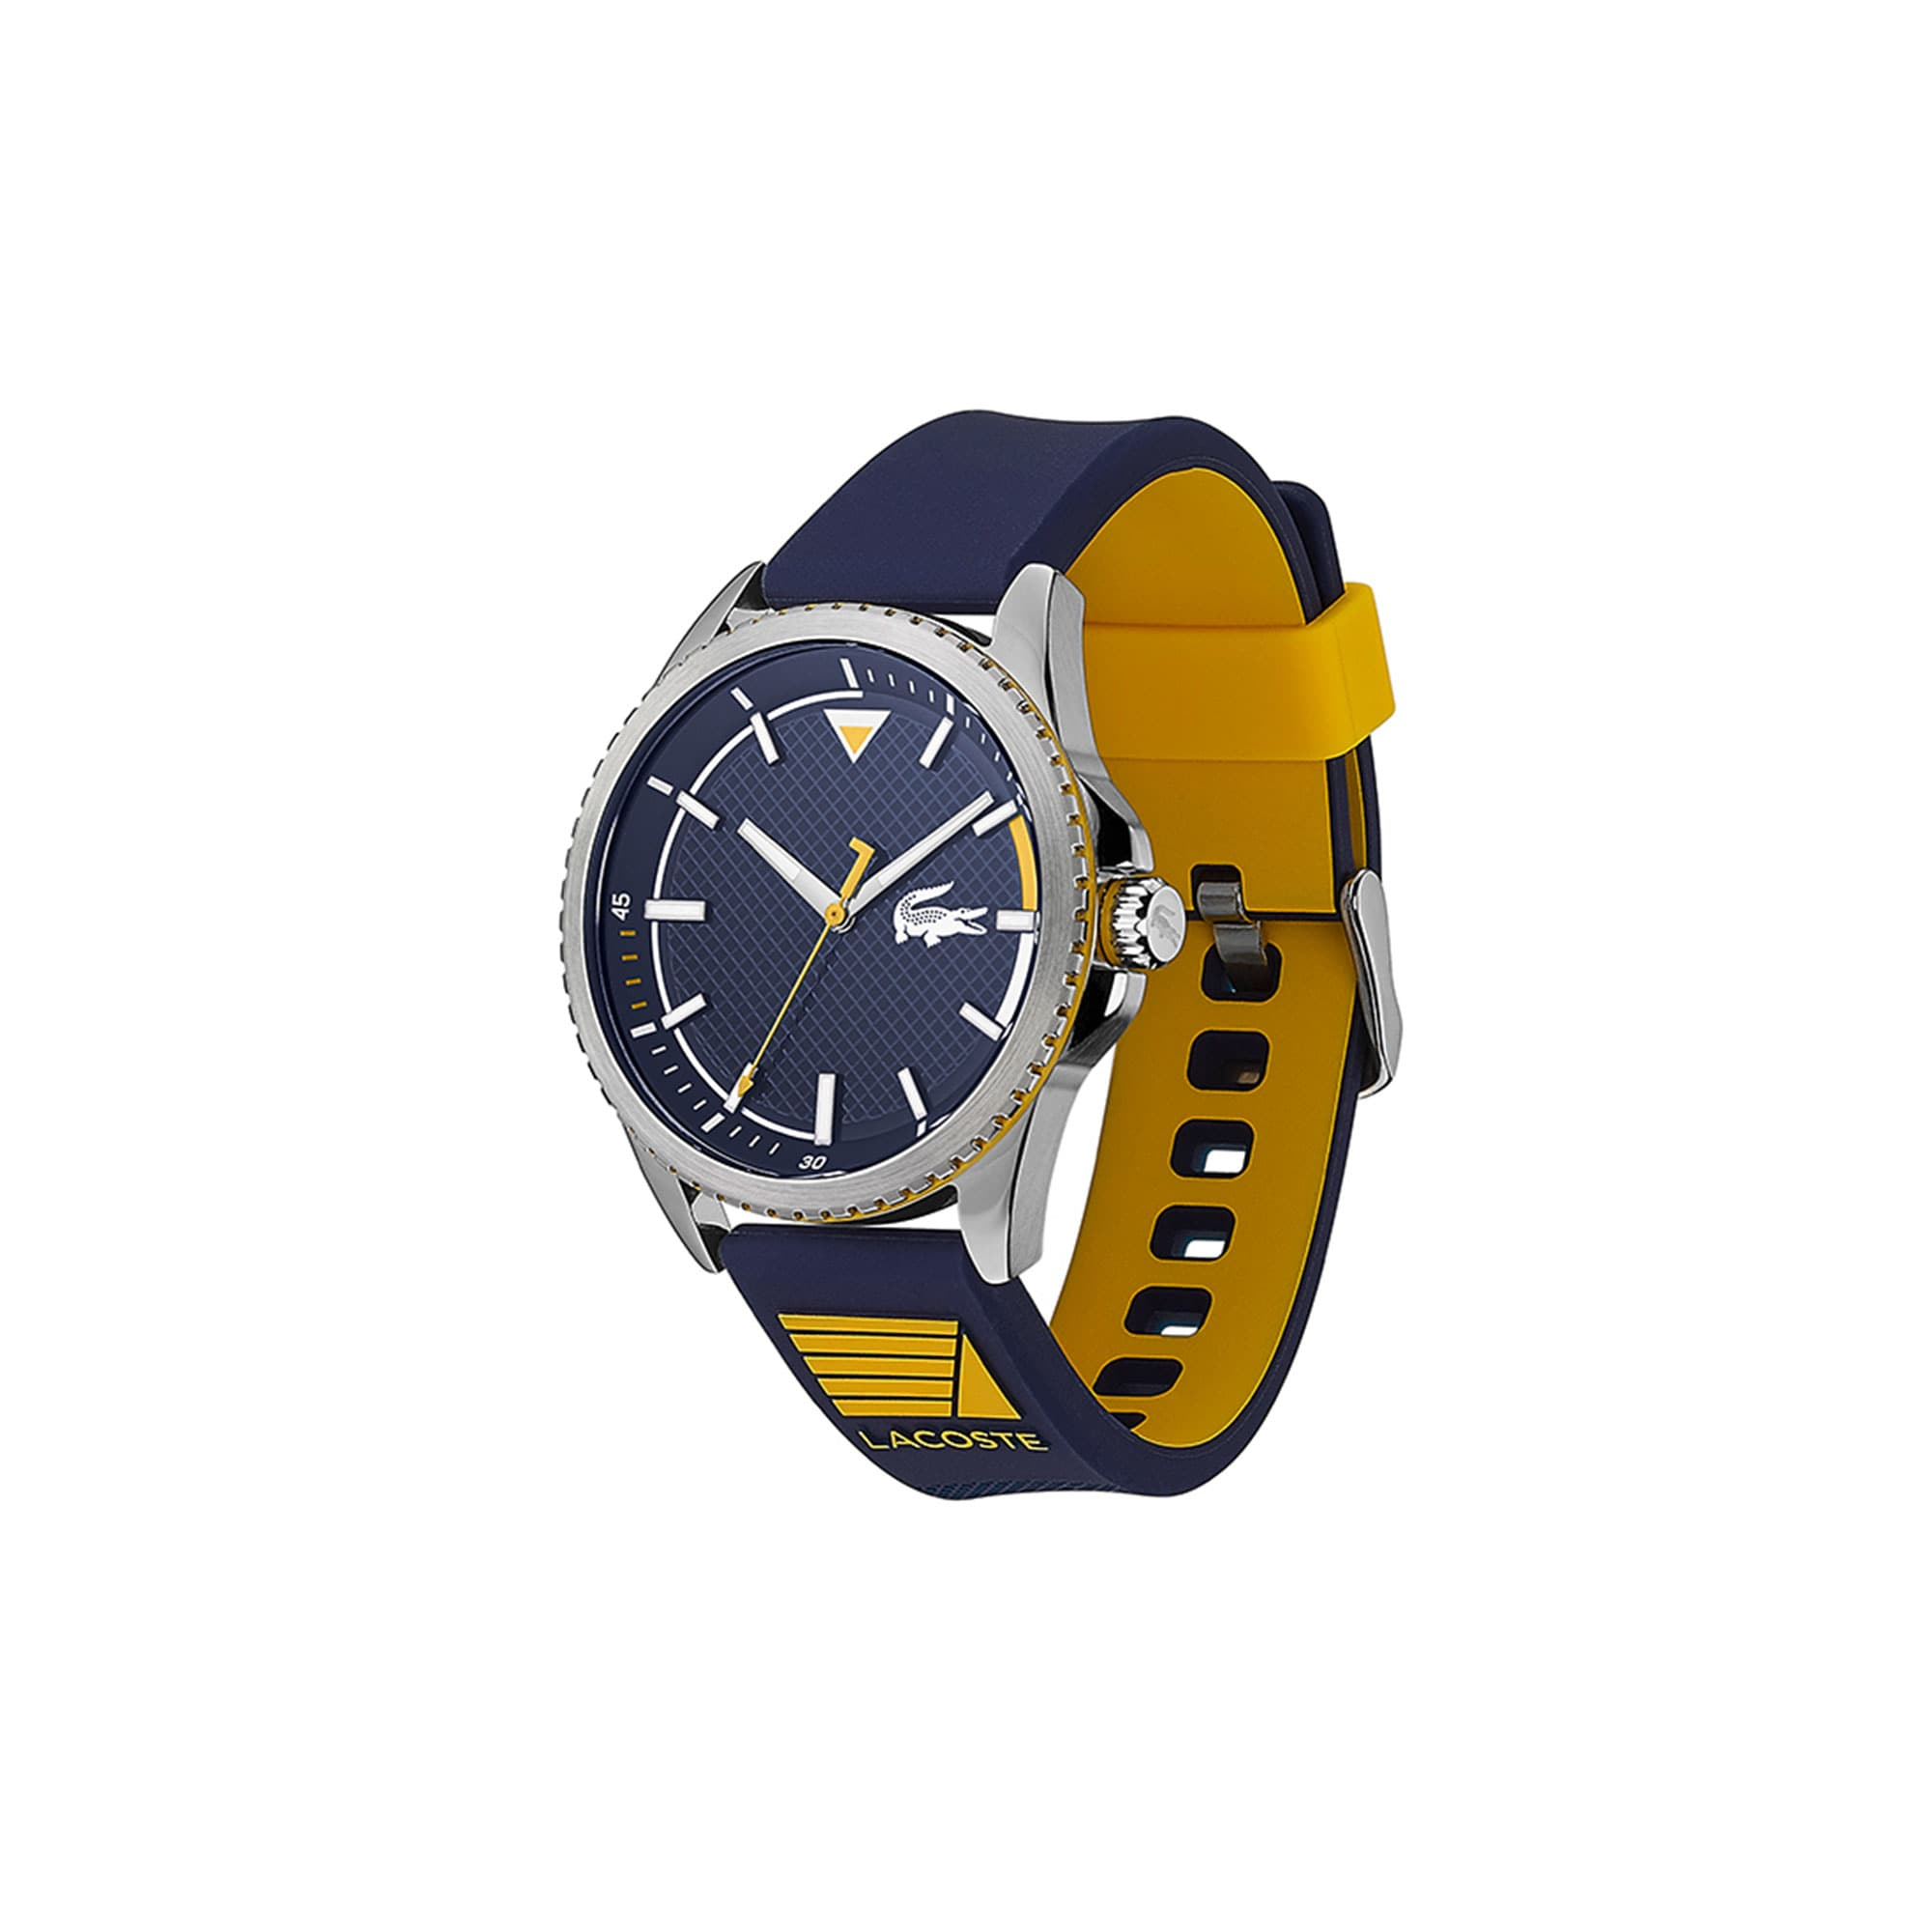 Gents Cap Marino Watch with Silicone Petit Piqué Strap